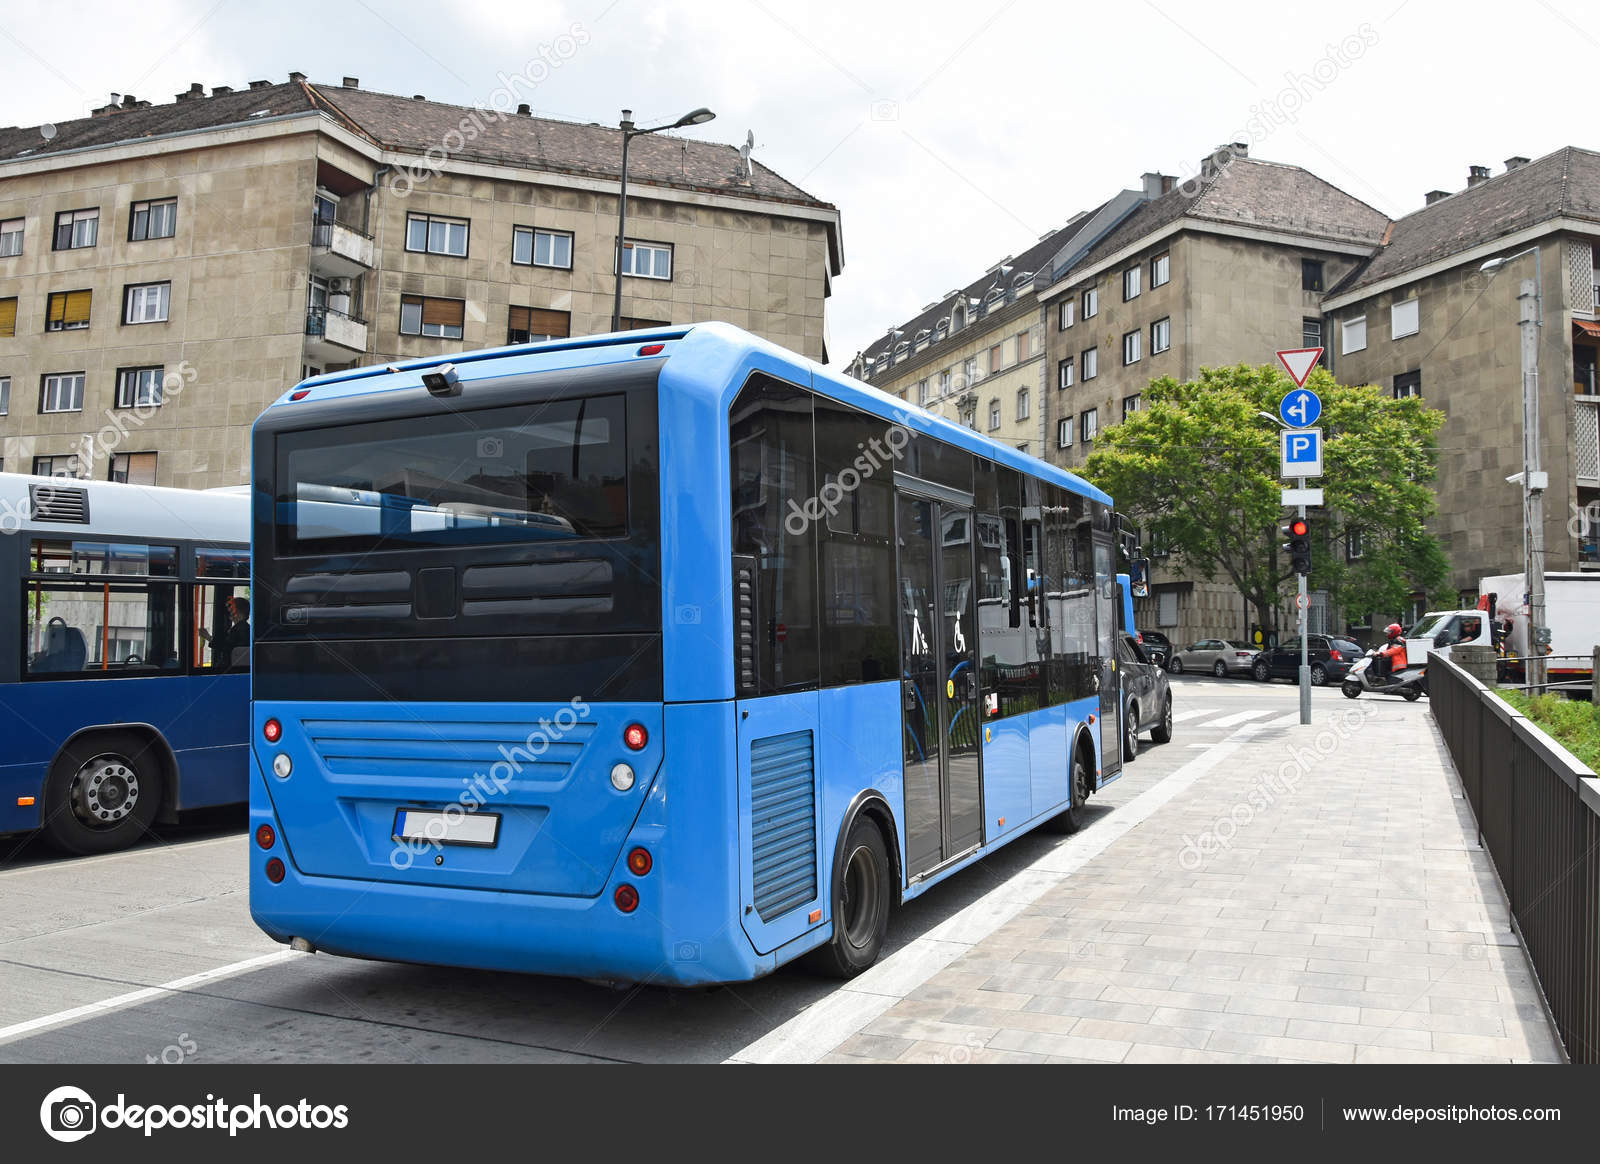 Blue Buses On The Streets Of Budapest Hungary Stock Photo C Majorosl66 171451950